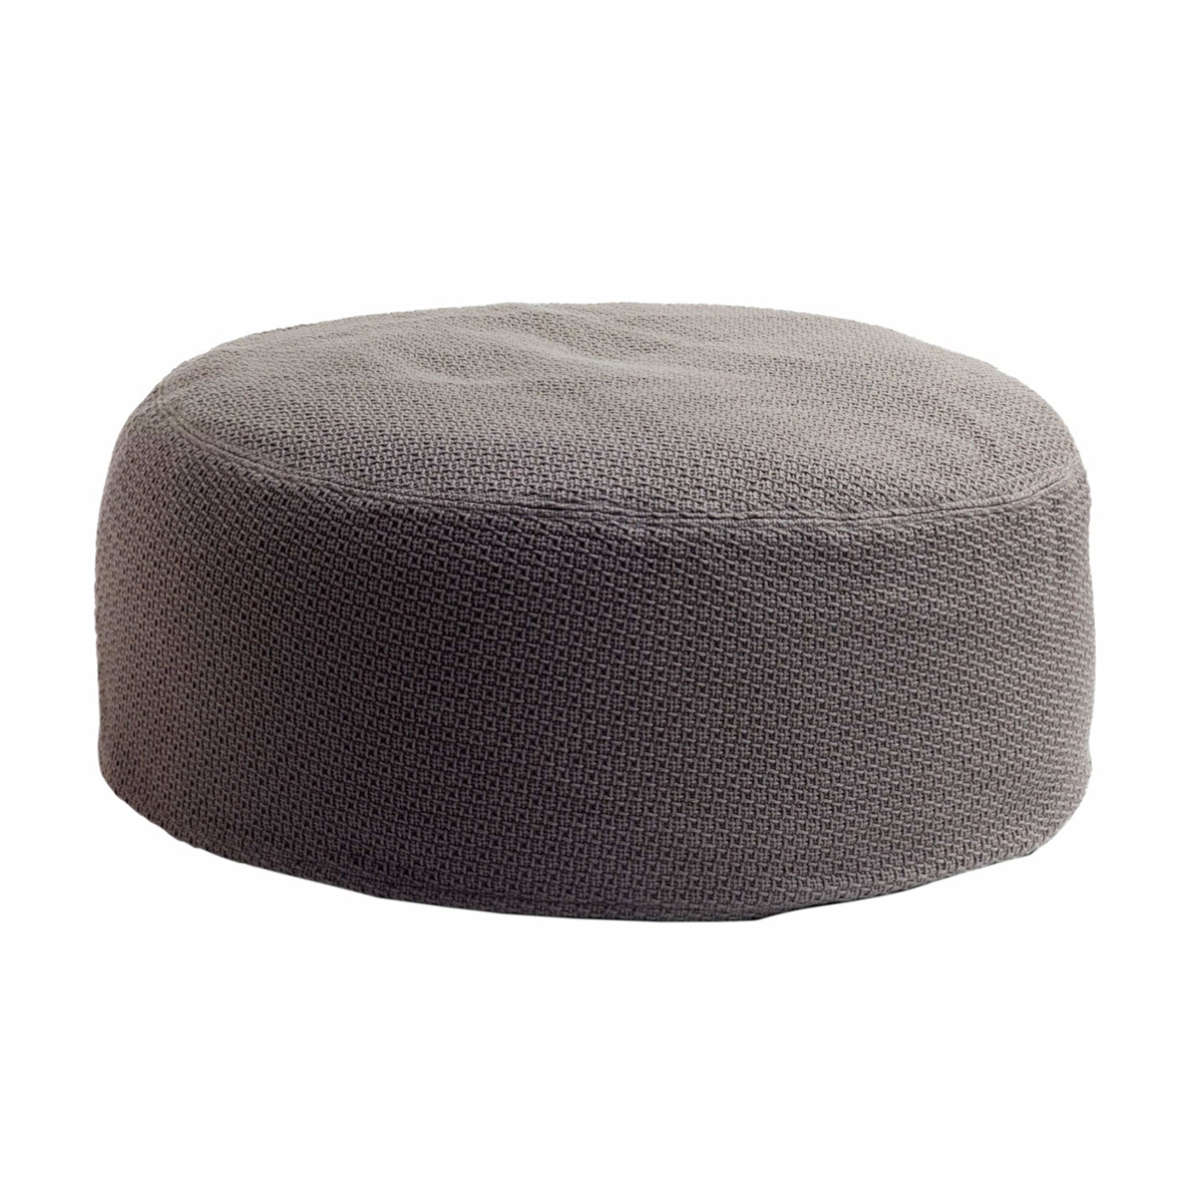 Tribu Pouf Soft Studio